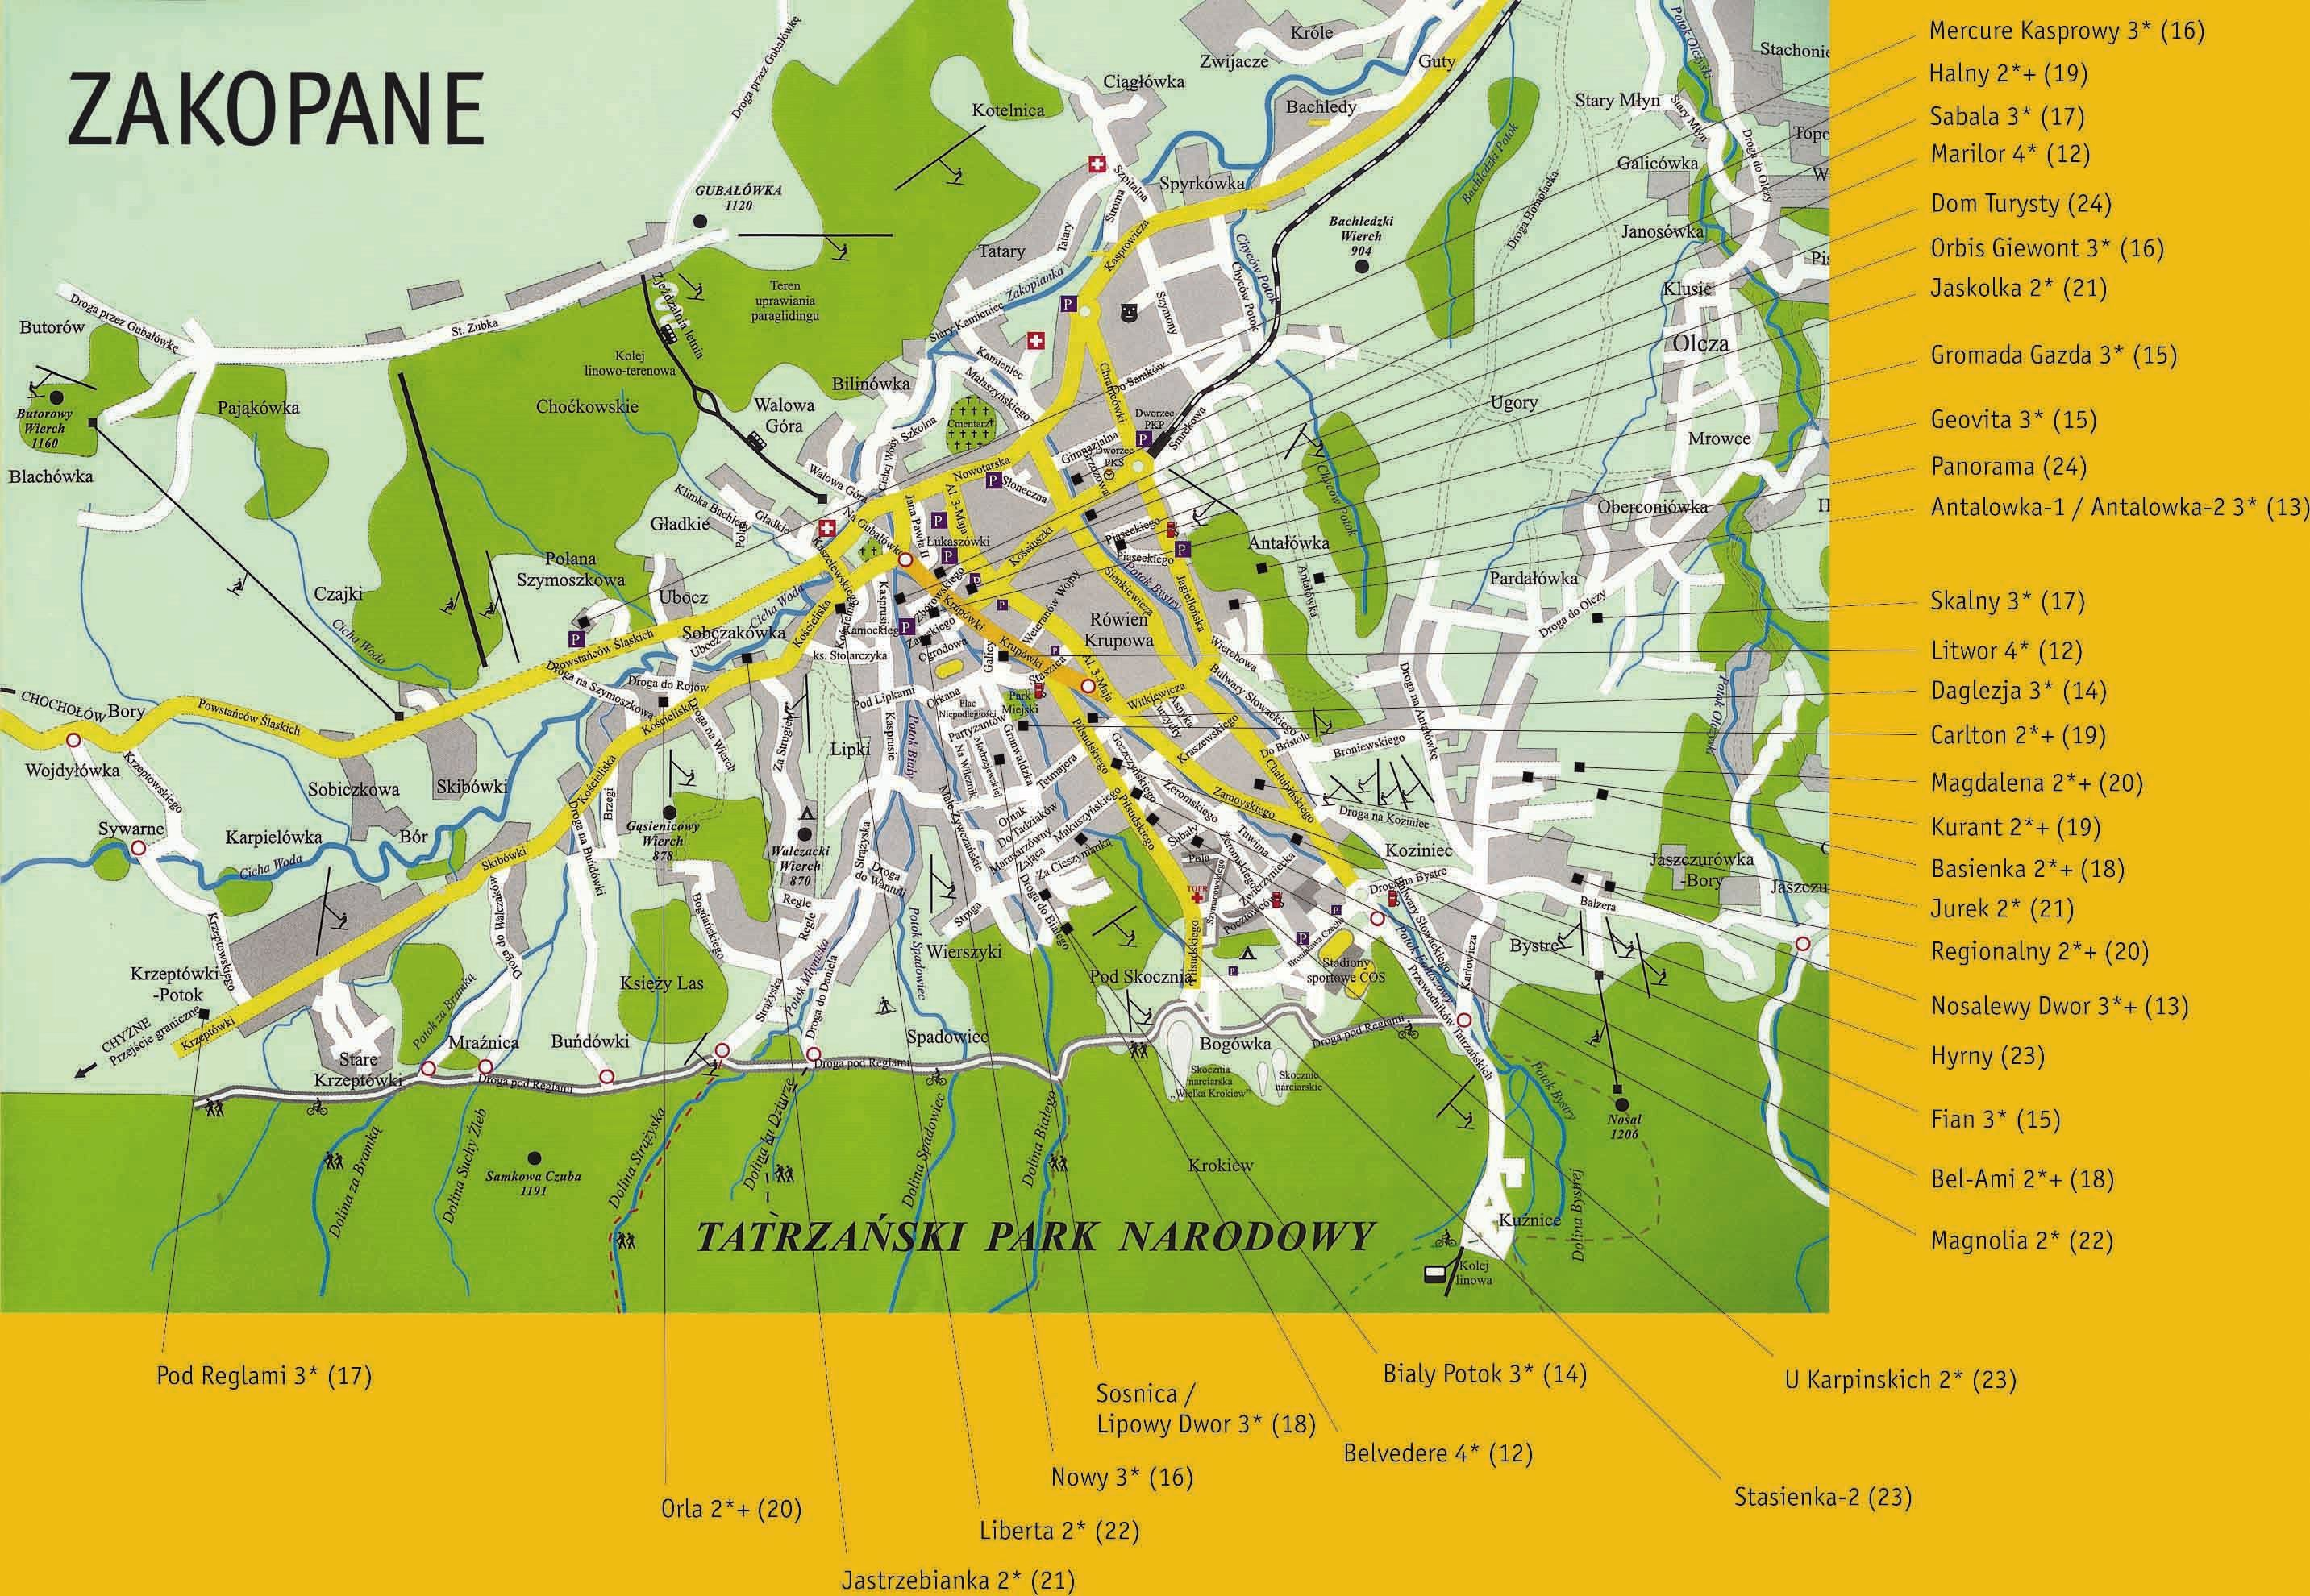 Large Zakopane Maps For Free Download And Print High Resolution